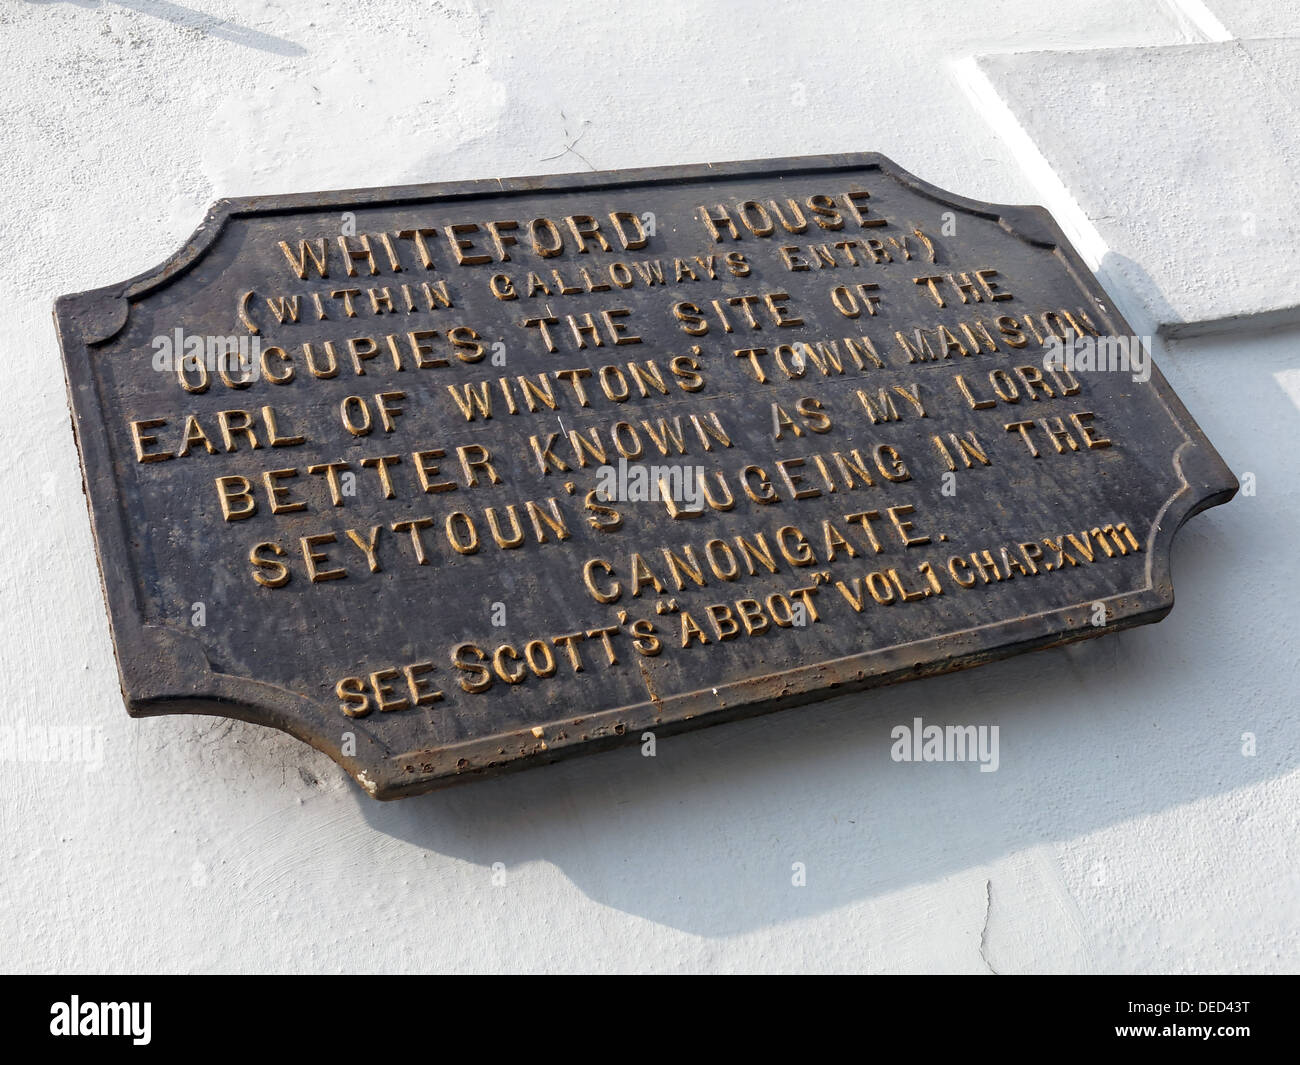 EH1,Scottish,Scot,scots,independance,independence,metal,Plaque,within,calloways,entry,occupies,the,site,of,the,earl,of,wintons,town,mansion,better,known,as,my,lord,seytouns,lugeing,in,the,canongate,cannongate,royal,mile,holyrood,on,wall,rusty,history,historic,Gotonysmith,Buy Pictures of,Buy Images Of